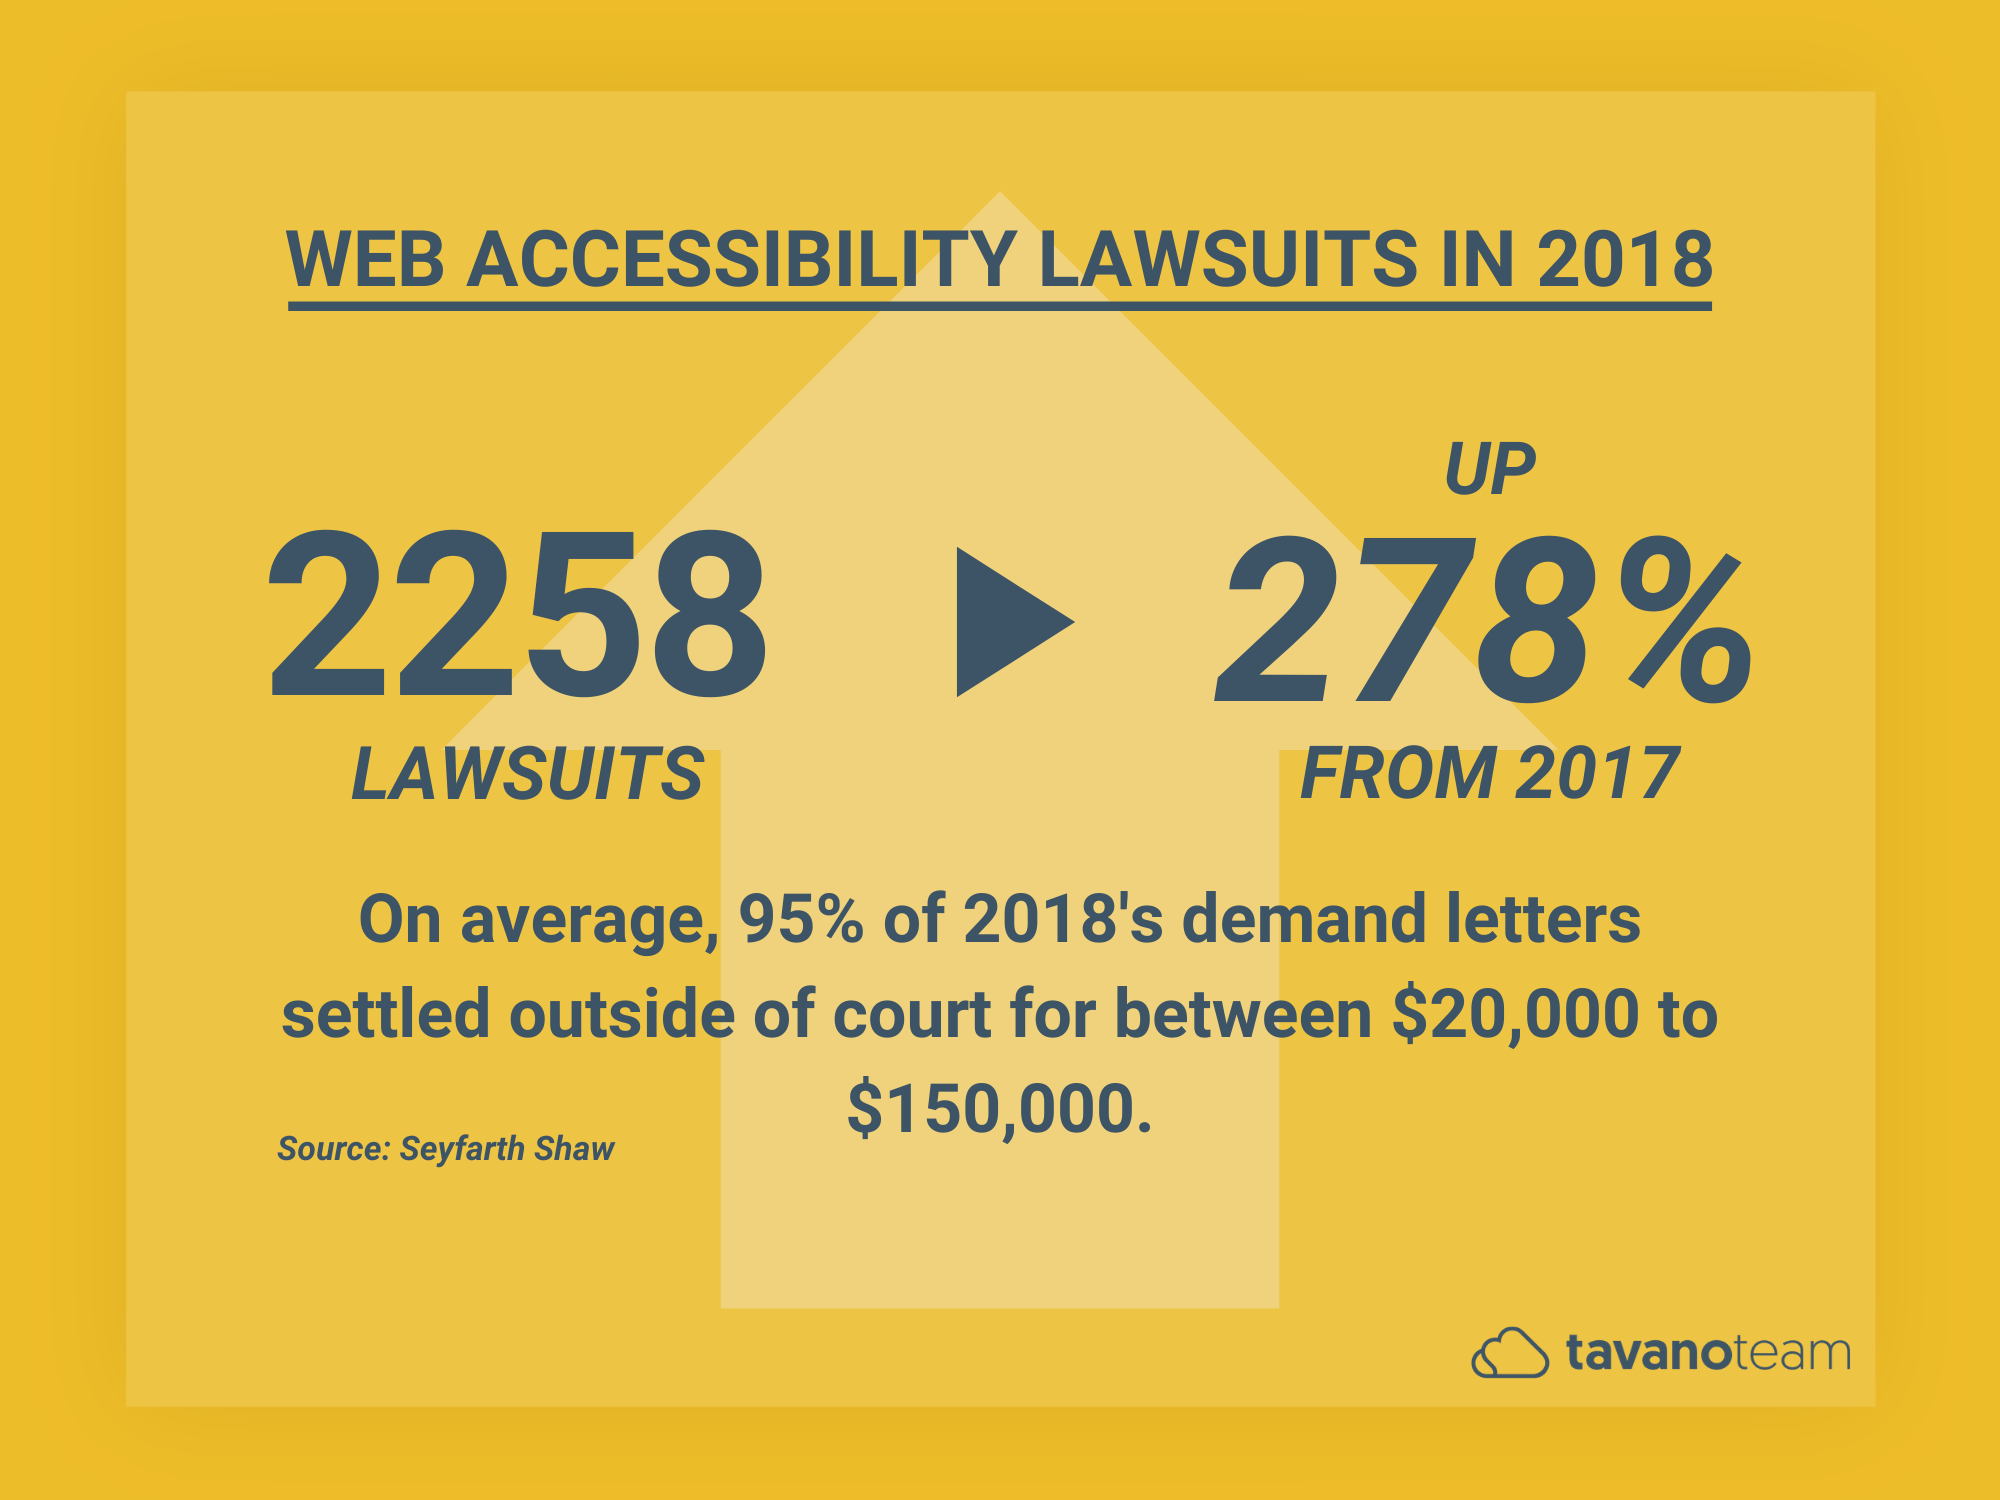 web-accessibility-tavano-team-lawsuits-2018